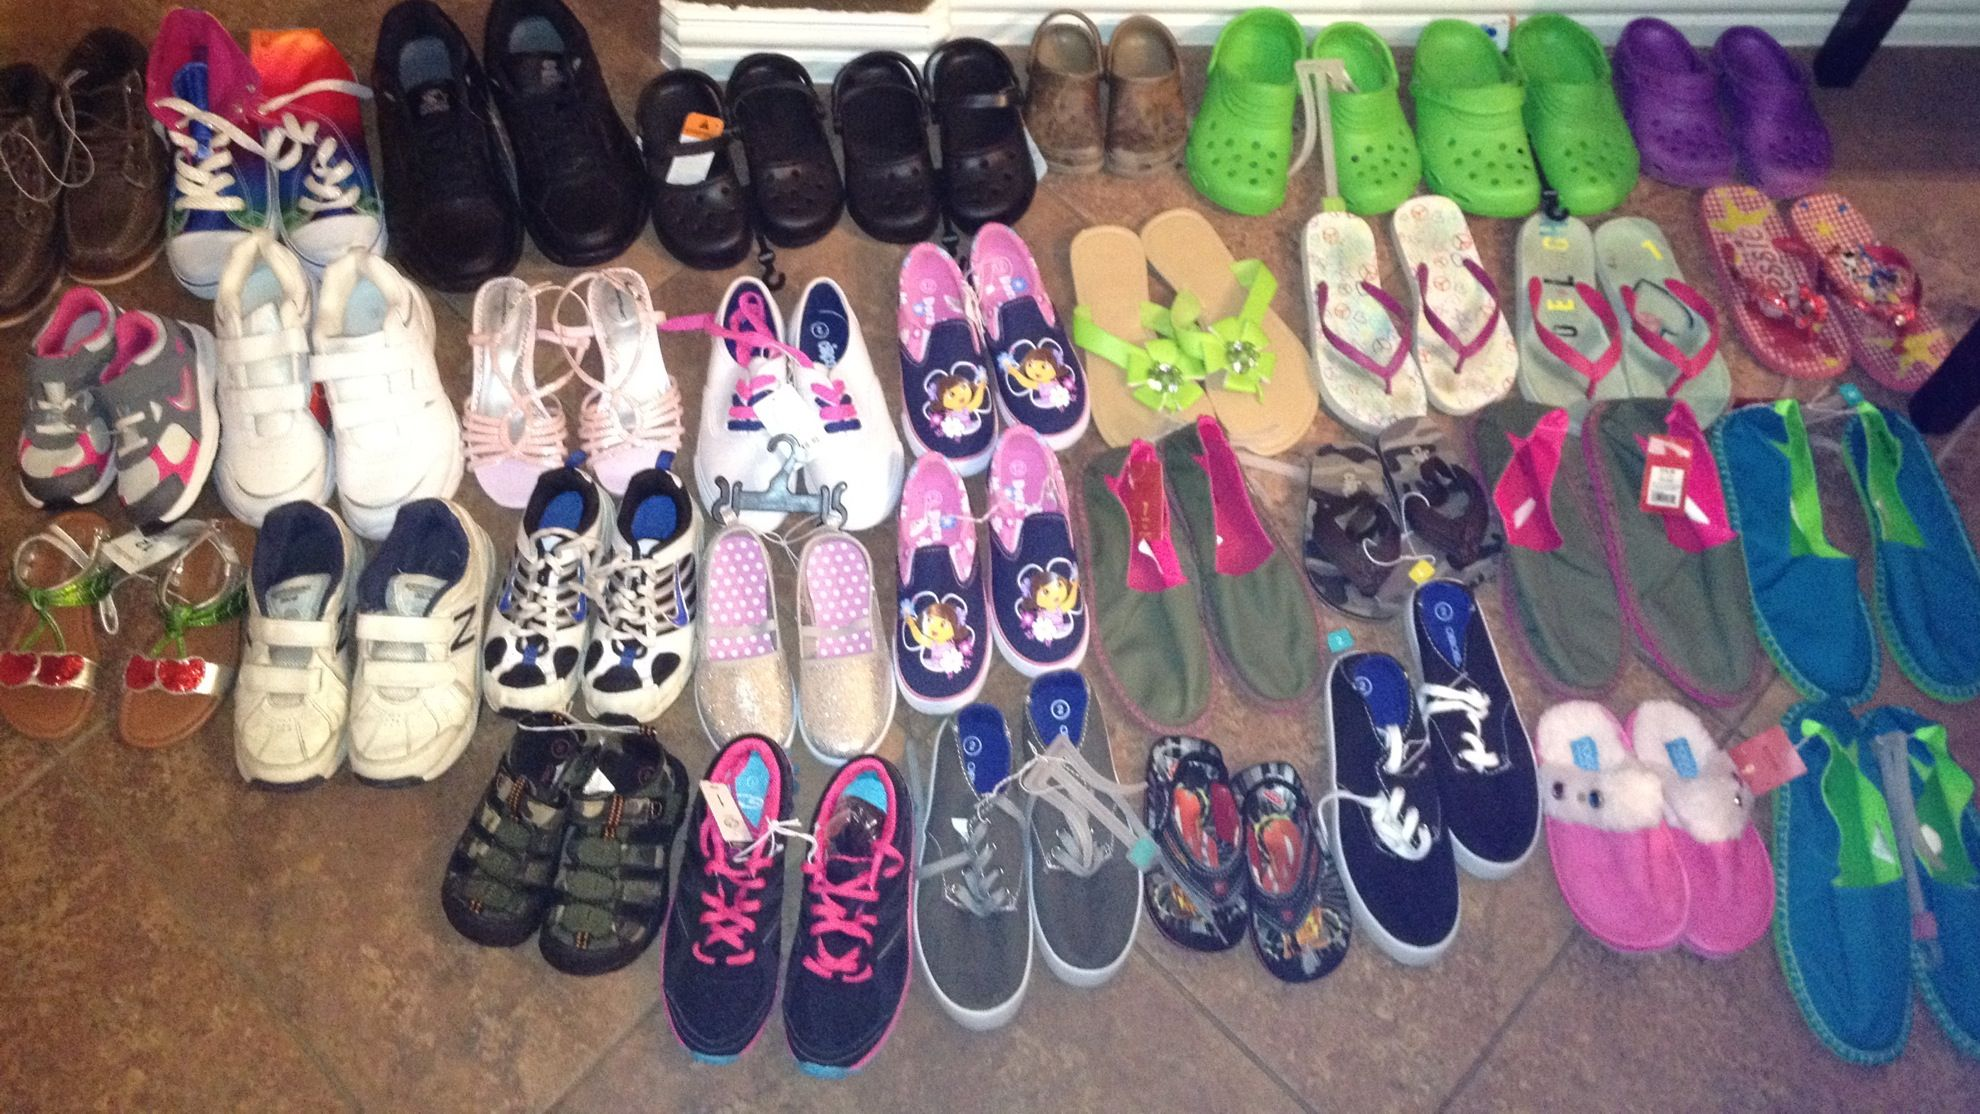 Thirty Four pairs and counting.... In lieu of gifts my 3rd grader  - Sydney decided to ask for shoes to donate to the children at SAMM's Ministry Transitional Living. I normally would not share this, but what a great way to bless others on your own birthday.